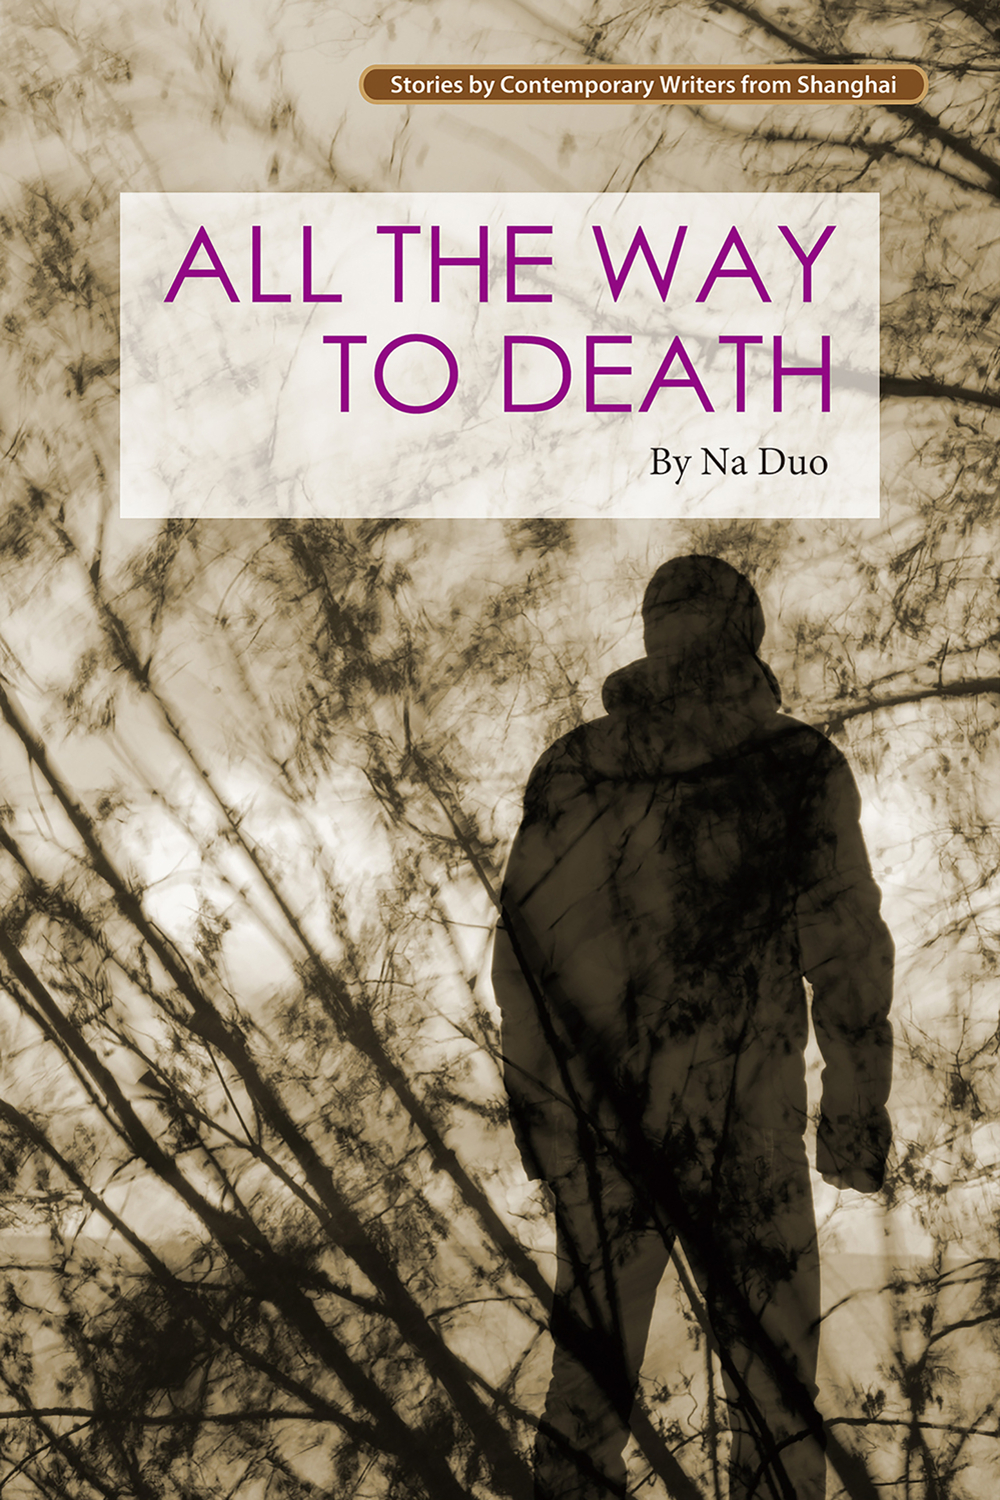 All the Way to Death